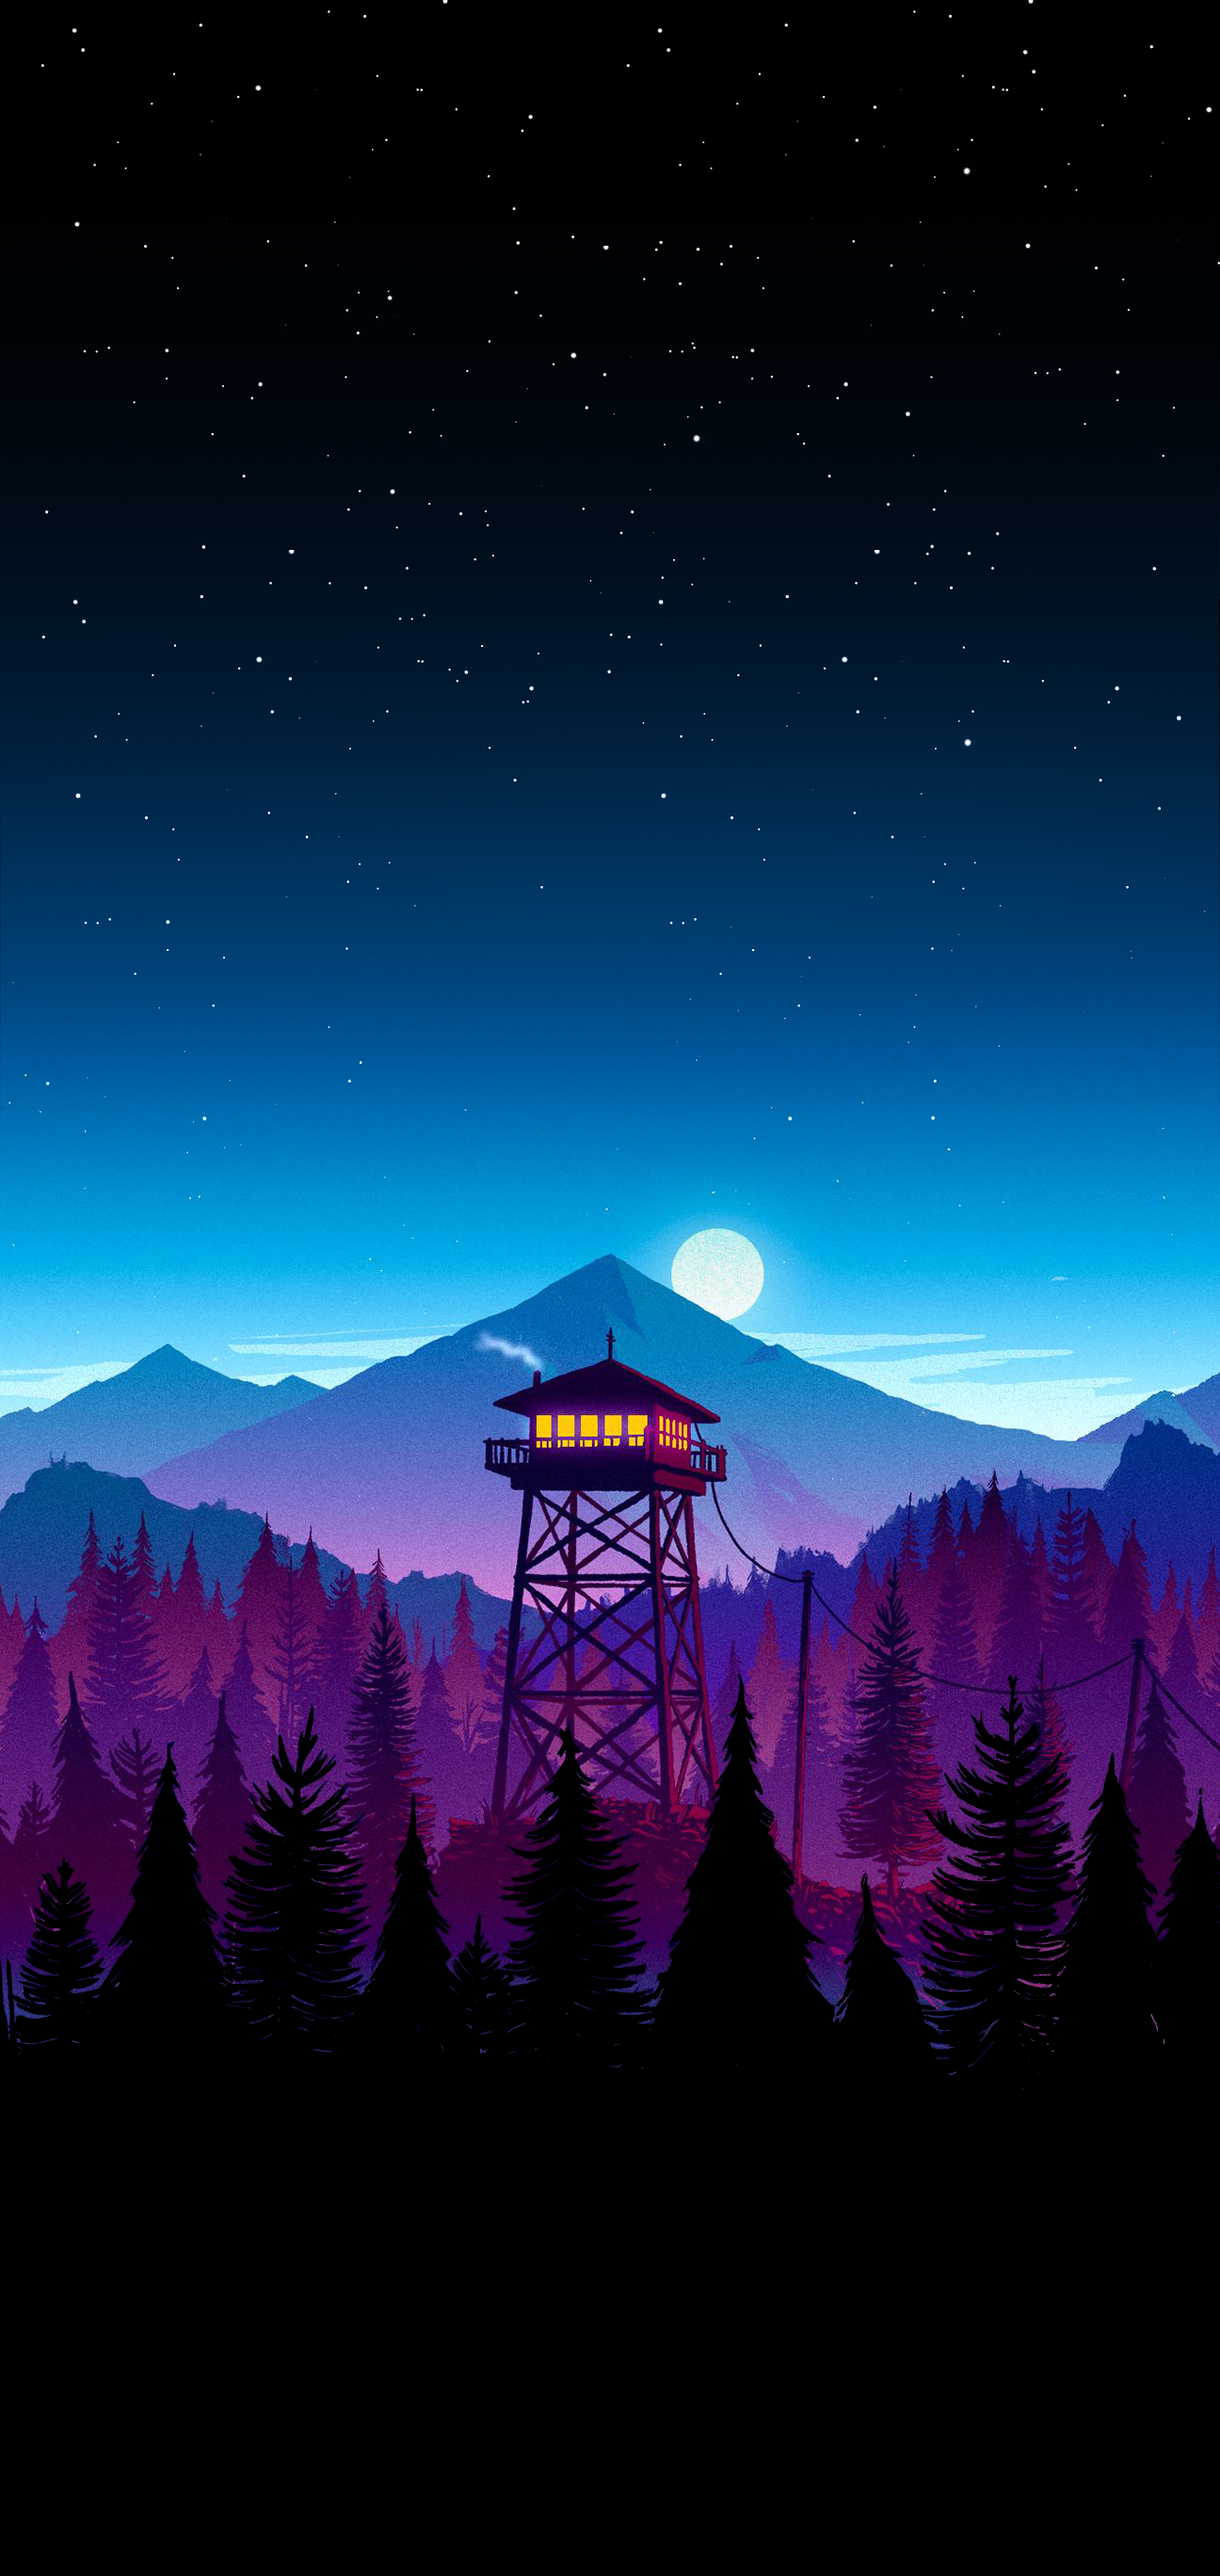 iPhone X wallpaper (modified to add pure black at top and bottom) : Firewatch